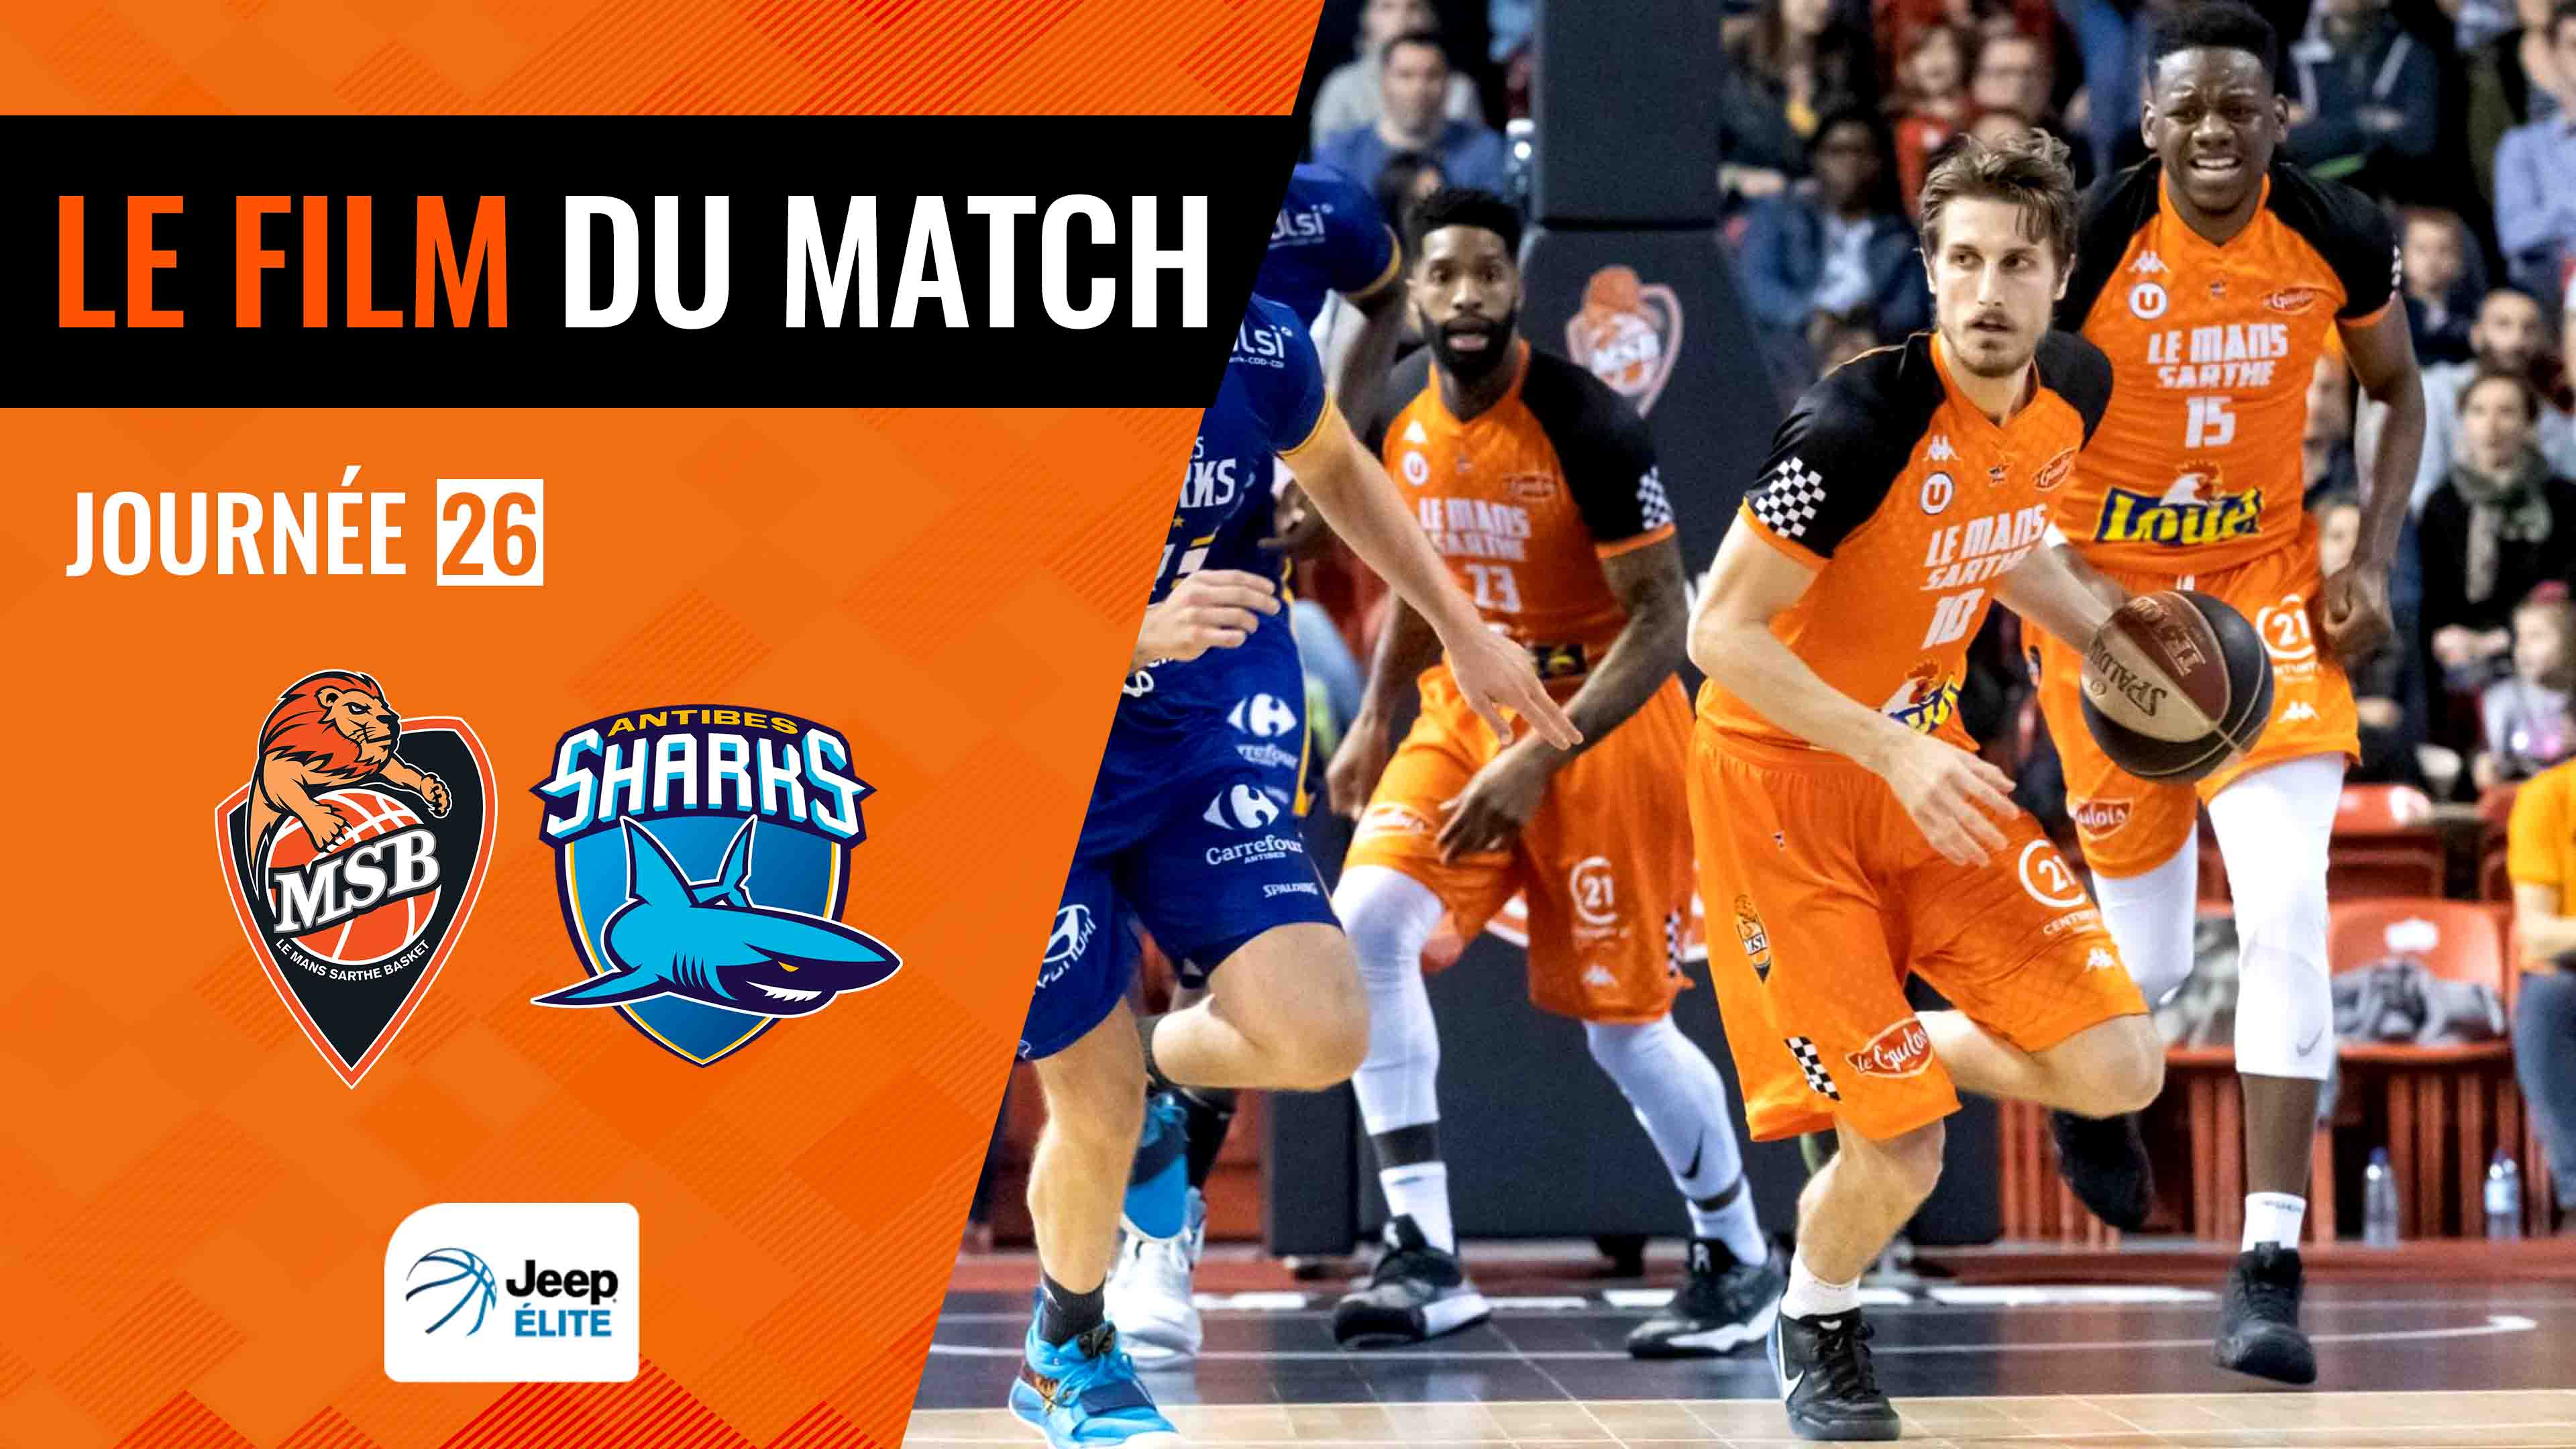 MSB vs. Antibes | Le film du match